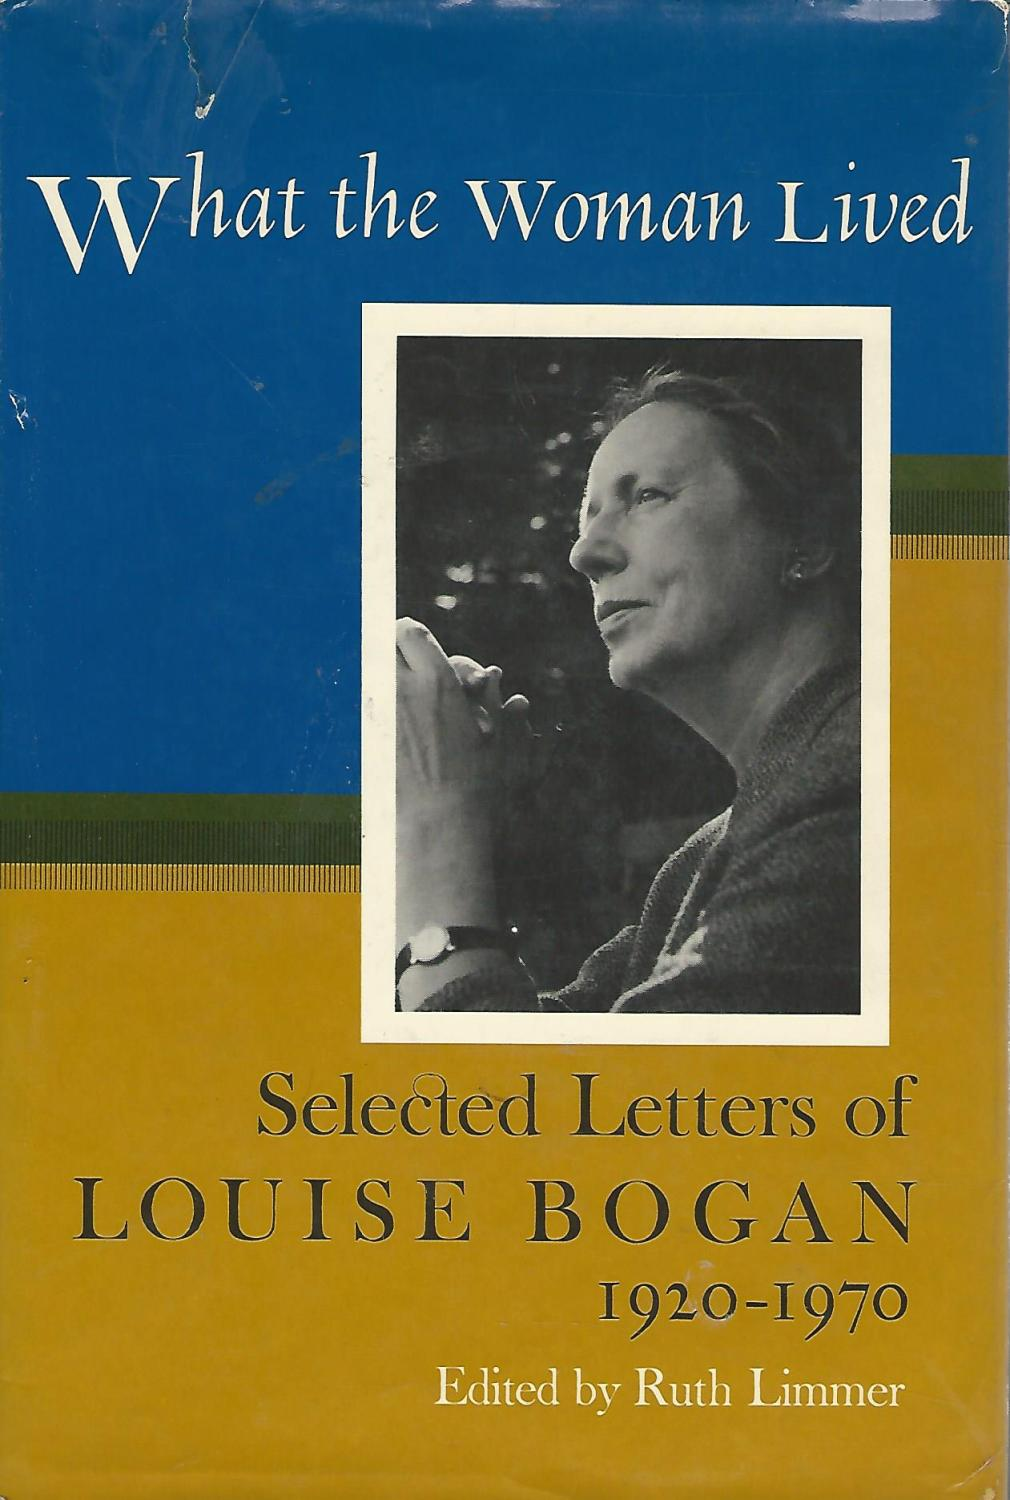 Image for What The Woman Lived: Selected Letters, 1920-70